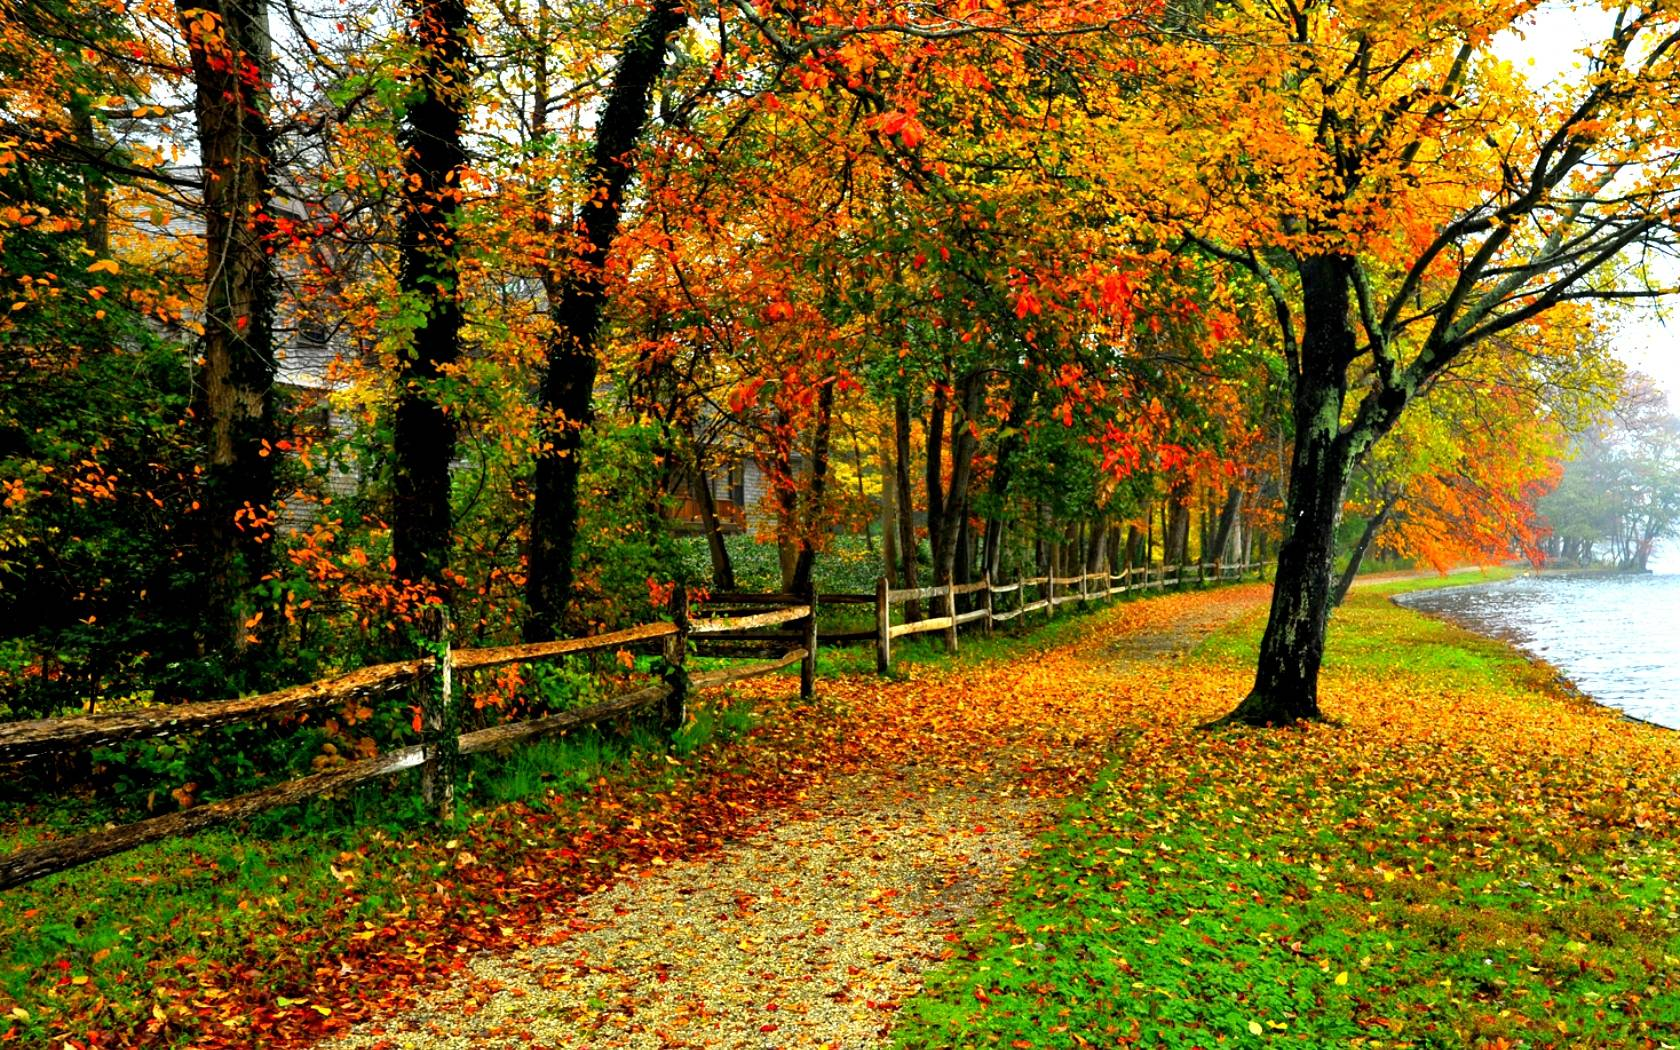 Fall Colors Wallpaper Backgrounds - Wallpaper Cave